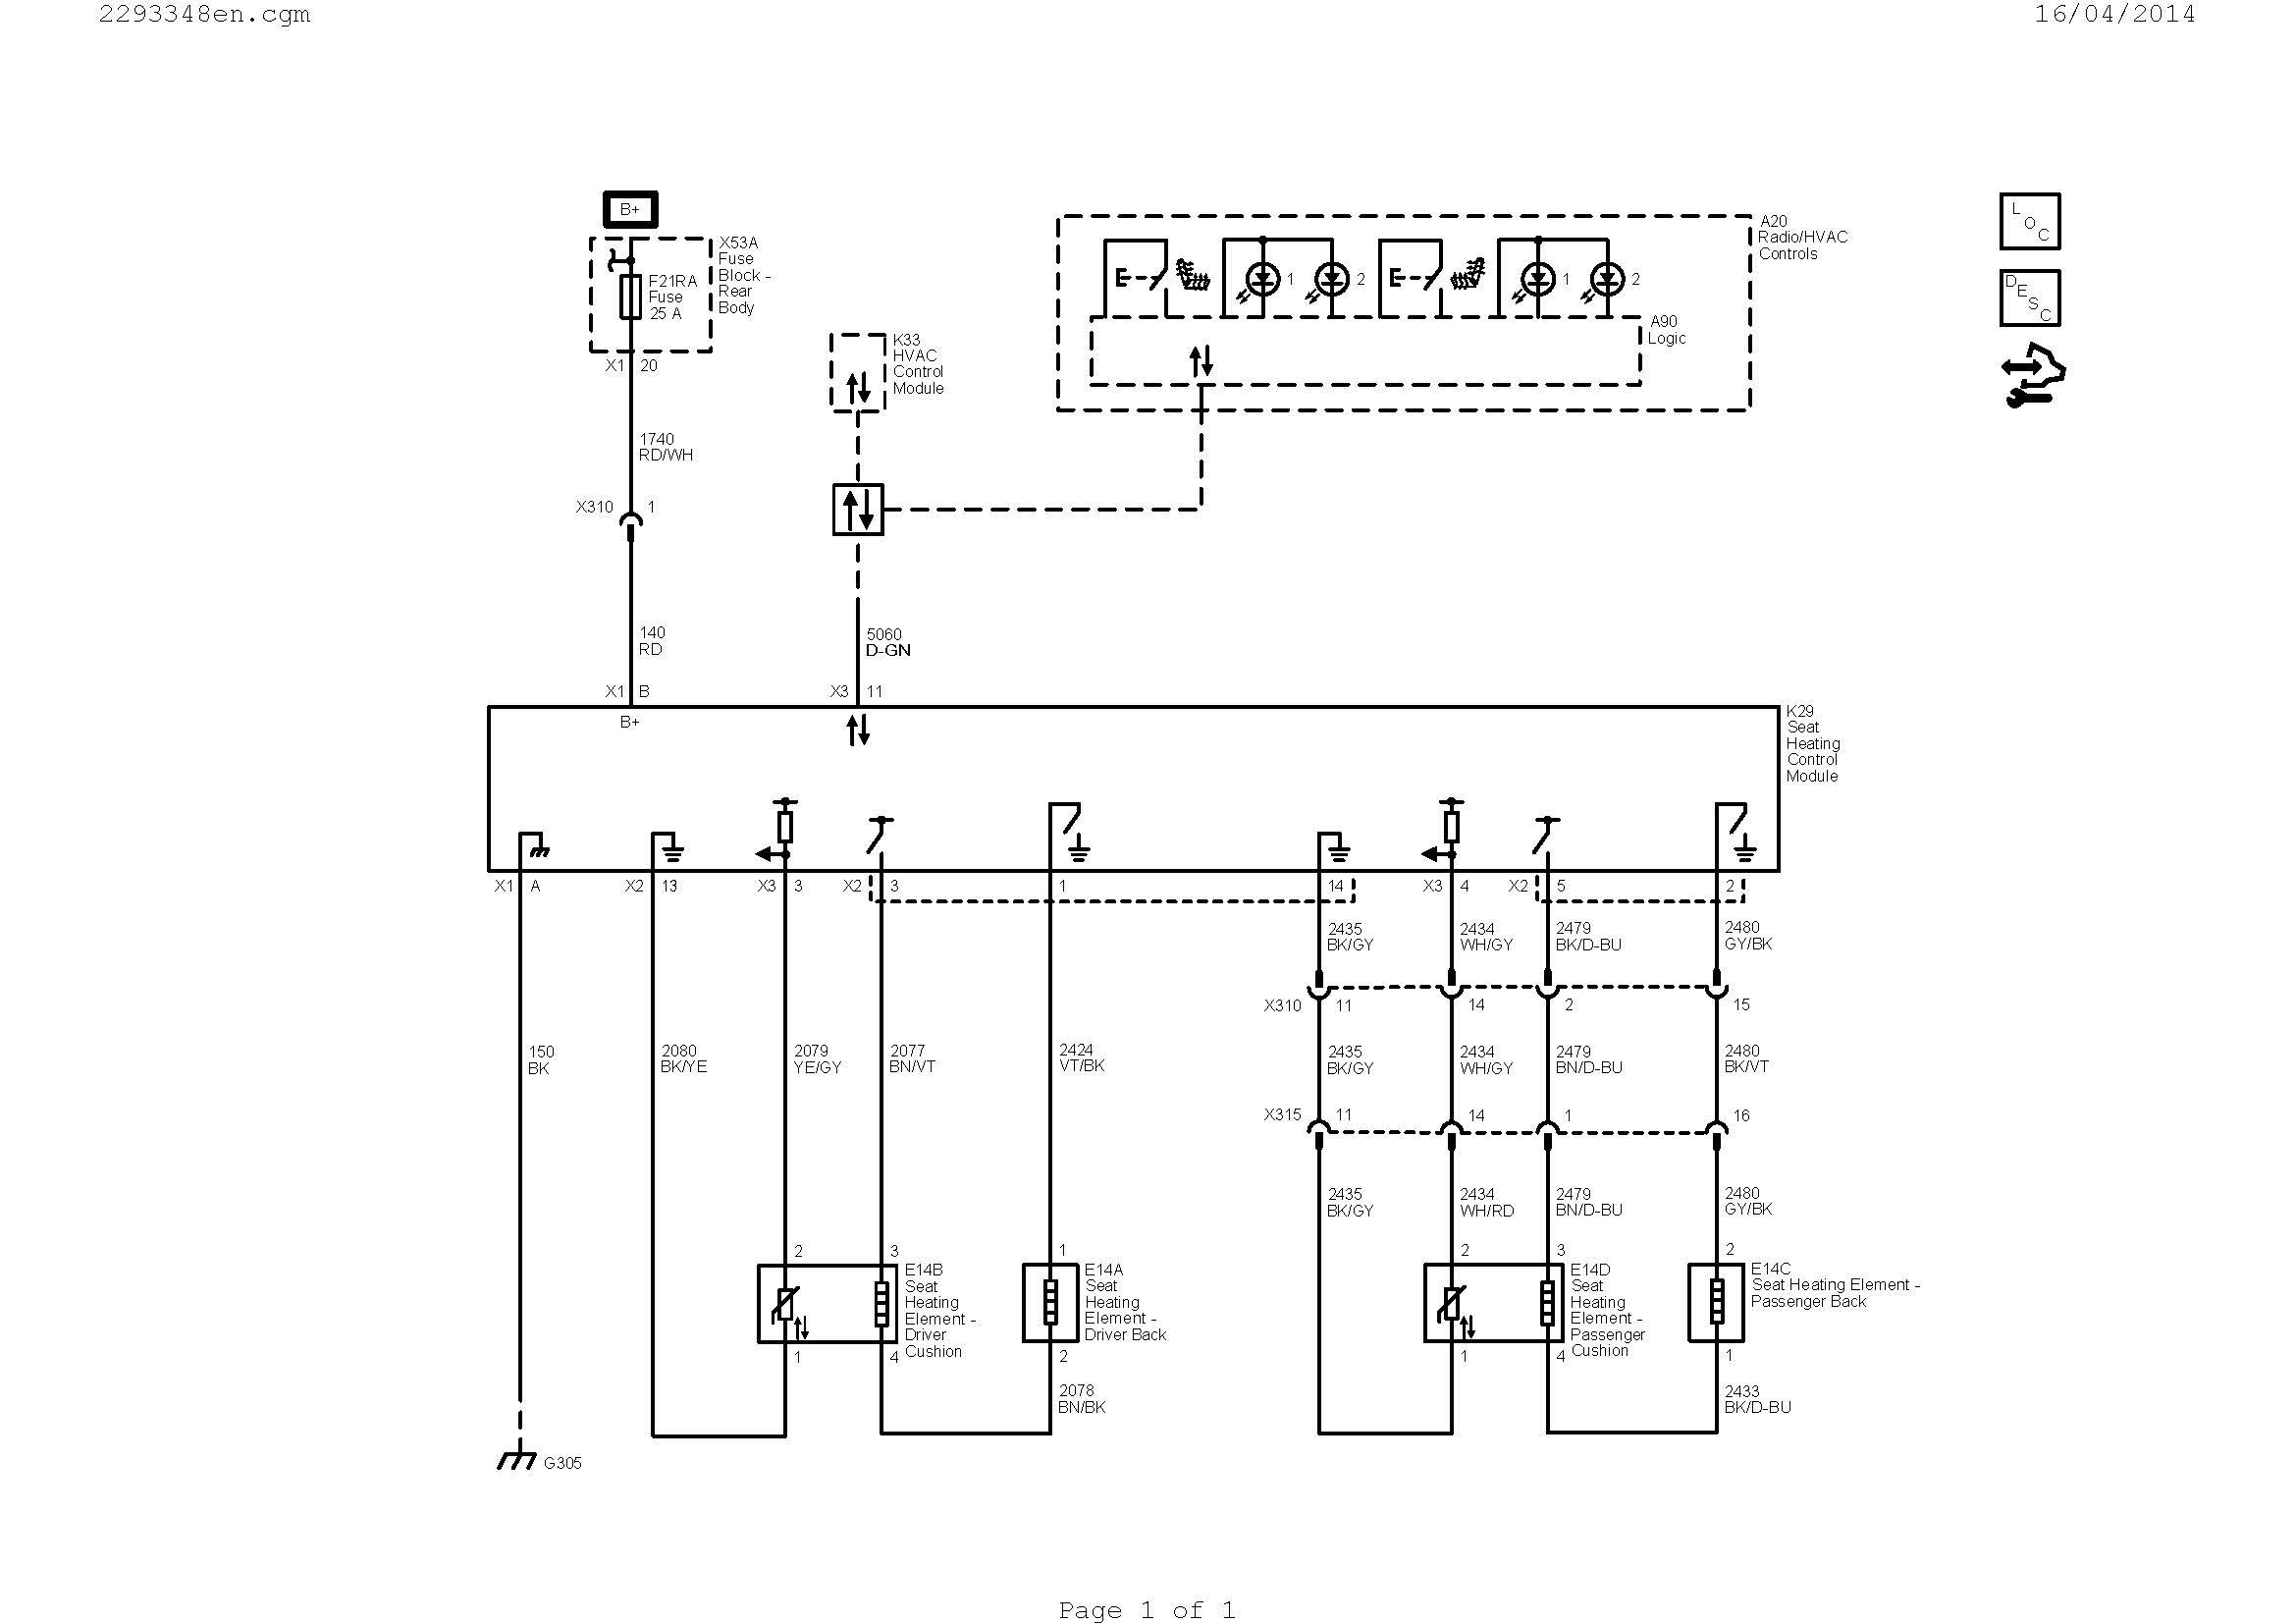 heating and cooling thermostat wiring diagram Download-Central Heating thermostat Wiring Diagram Central Boiler thermostat Wiring Diagram Download Wiring Diagrams for Central 13-q